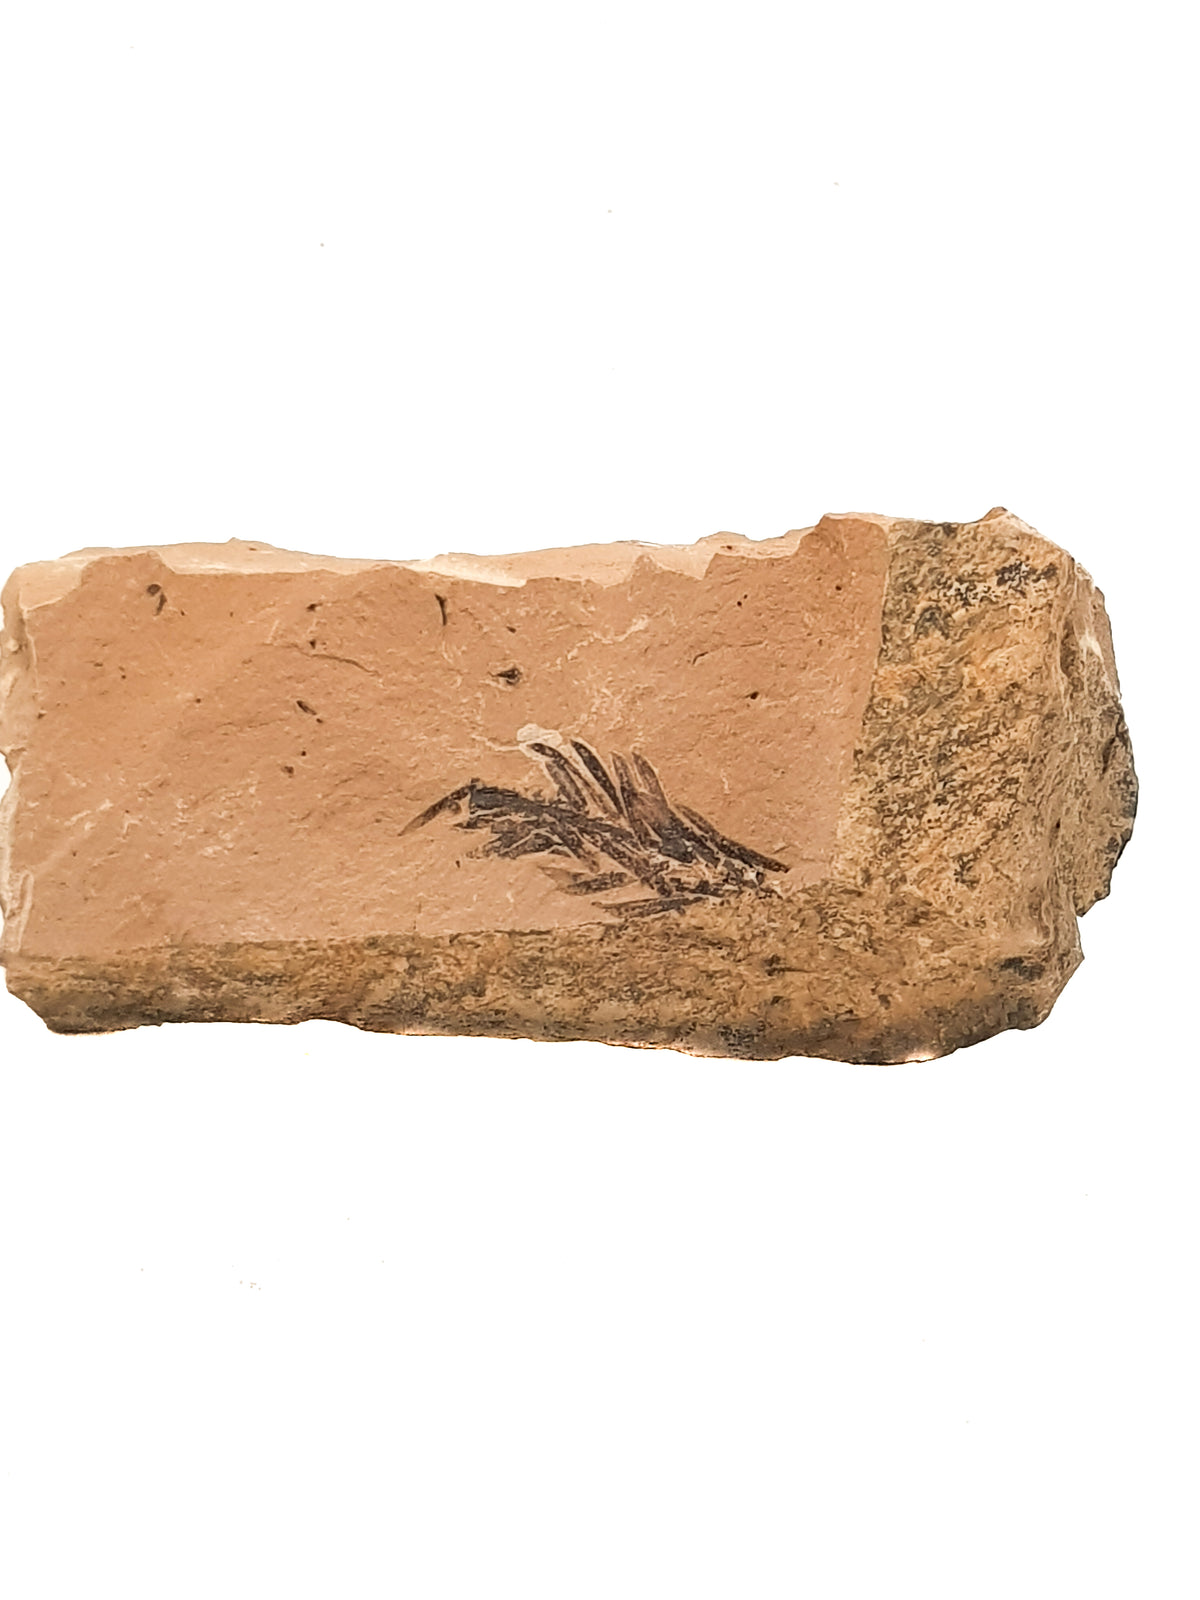 A partial meta sequoia fossil leaf on a beige limestone